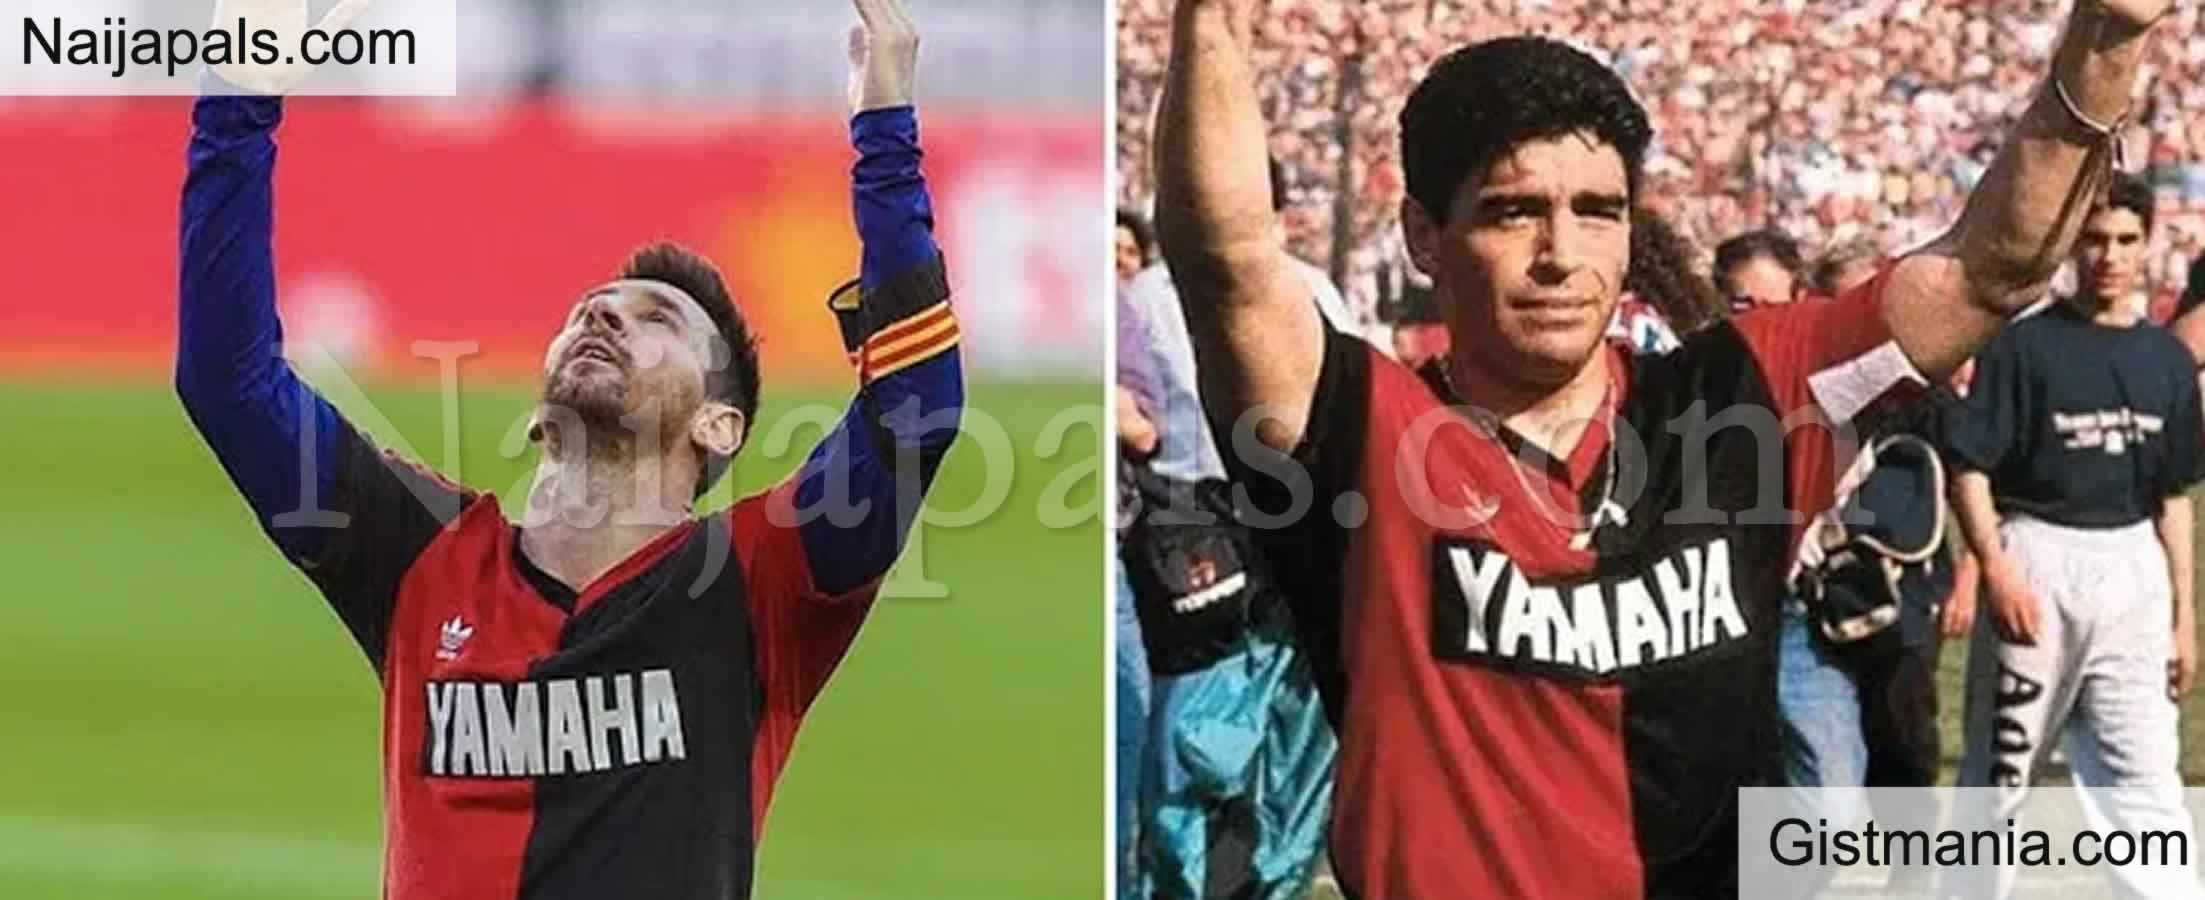 <img alt='.' class='lazyload' data-src='https://img.gistmania.com/emot/news.gif' /> <b>Maradona's Son Tells Messi To Retire The No 10 Shirt</b>